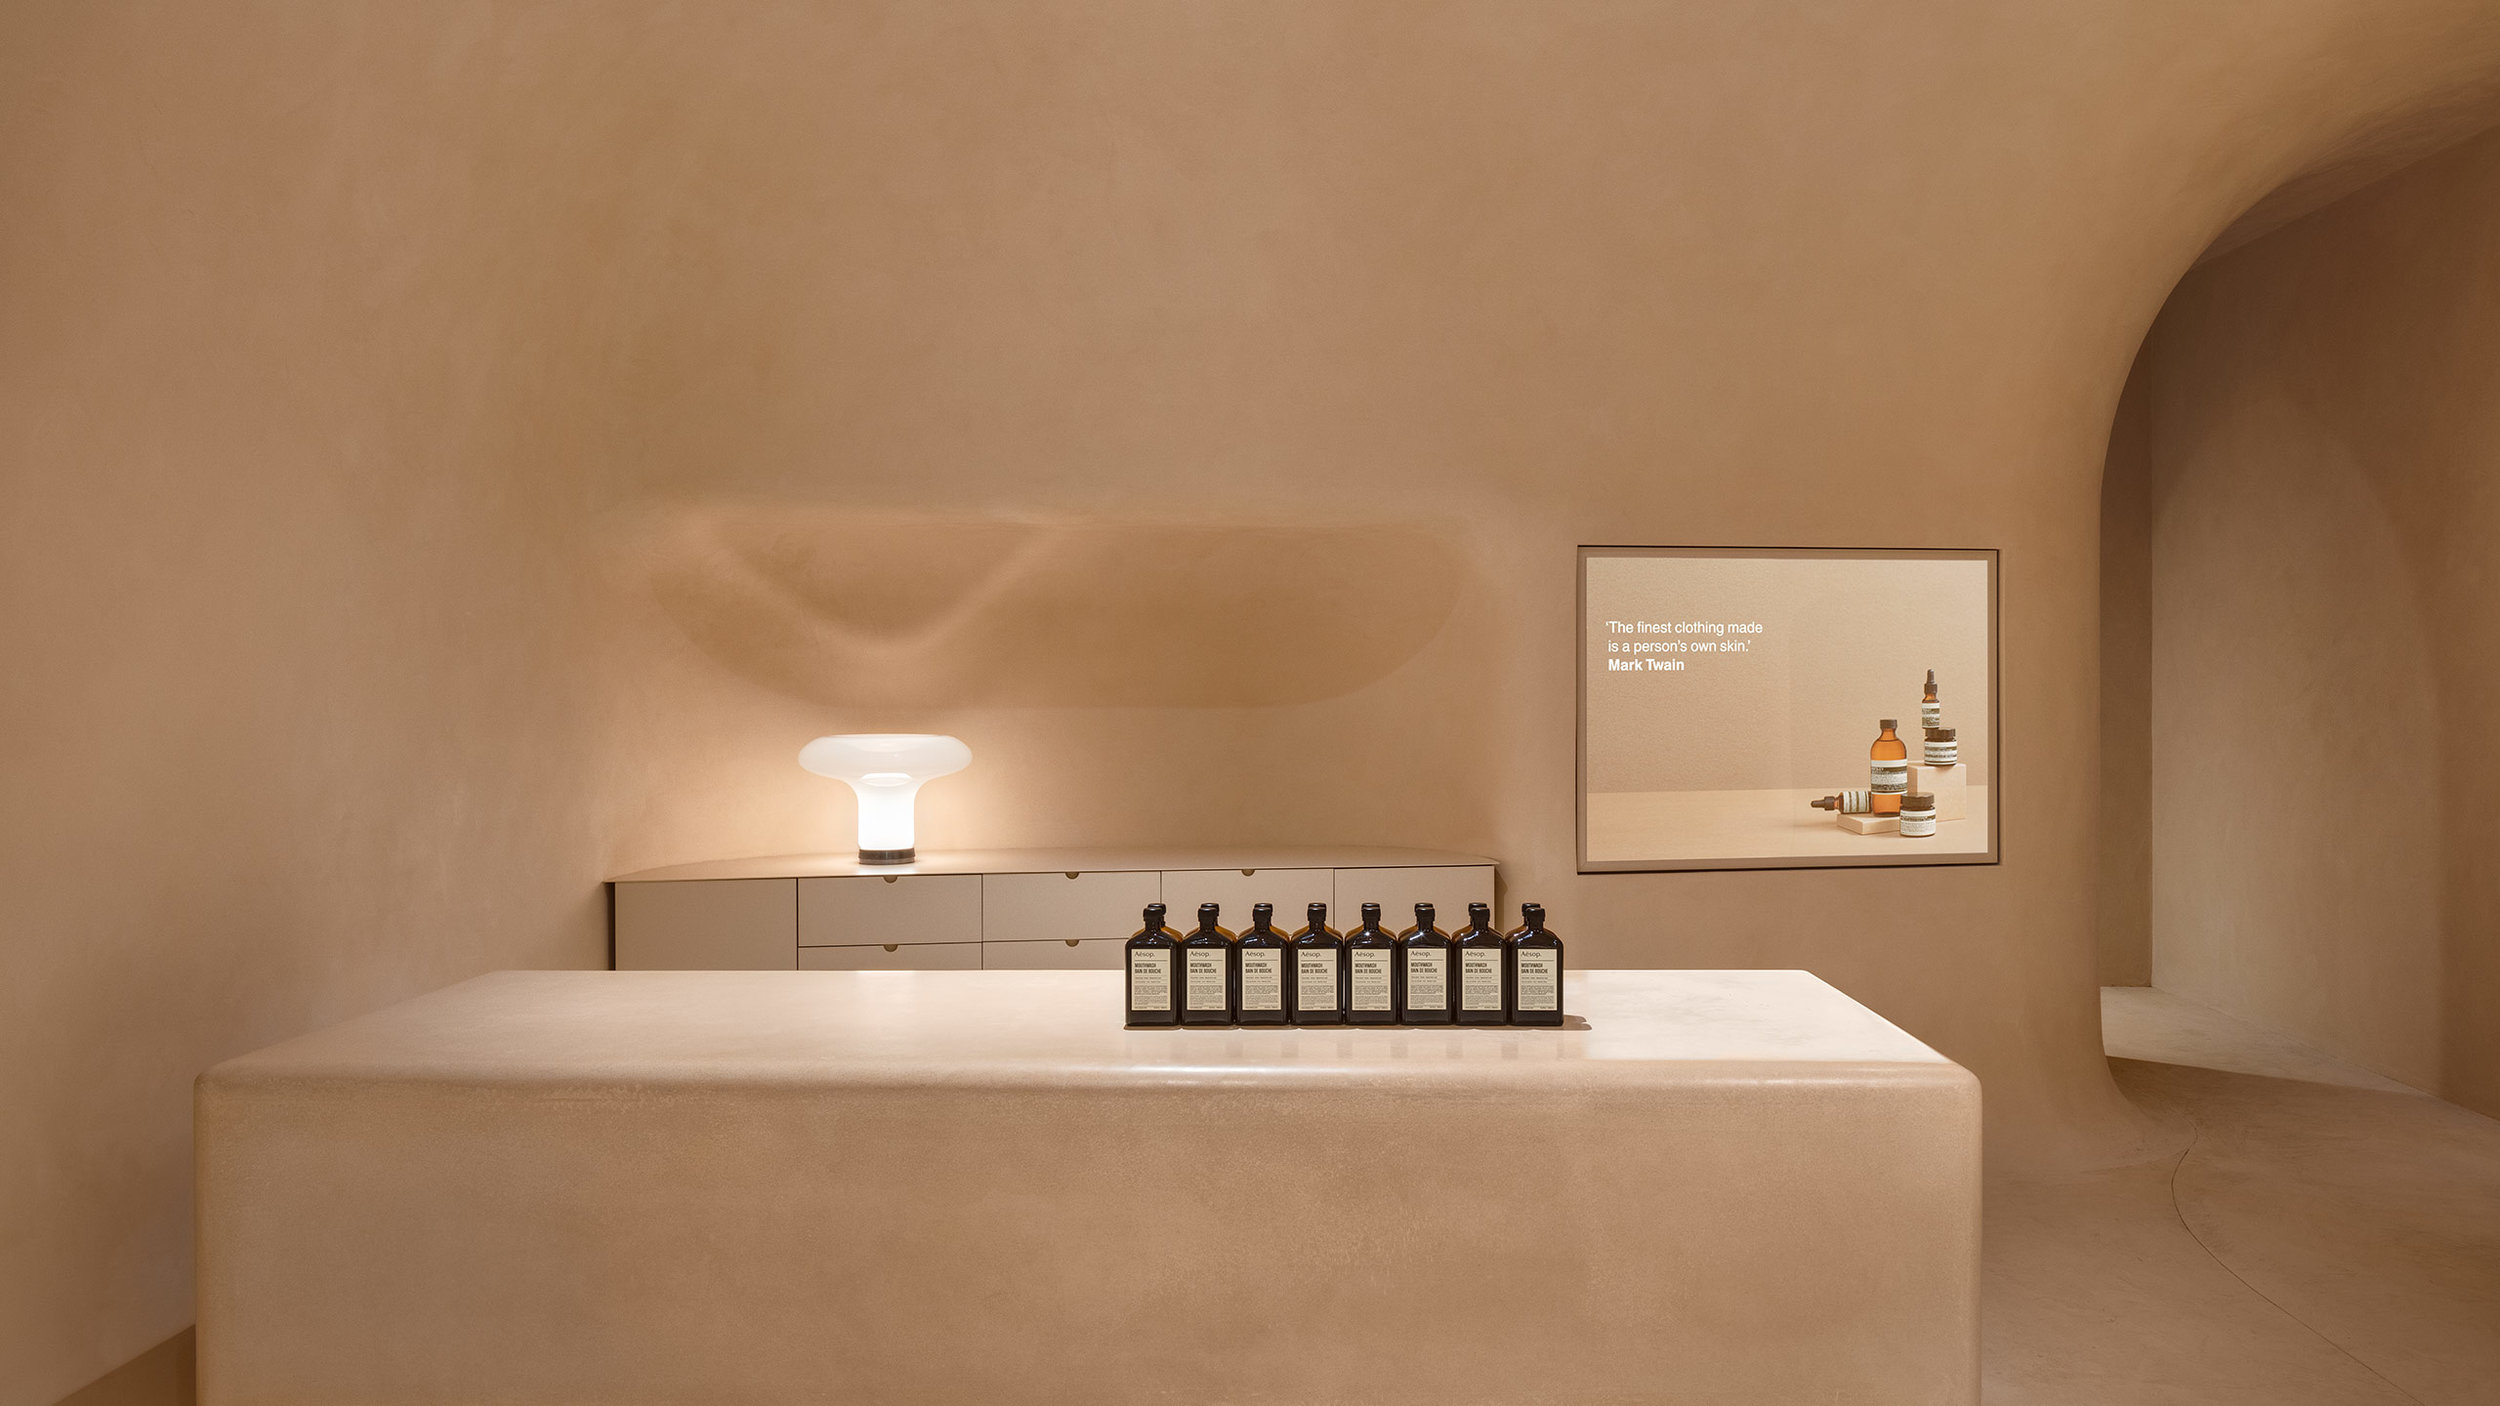 Aesop-US-Store-Houston-Galleria-Carousel-1-Desktop-2560x1440px.jpg